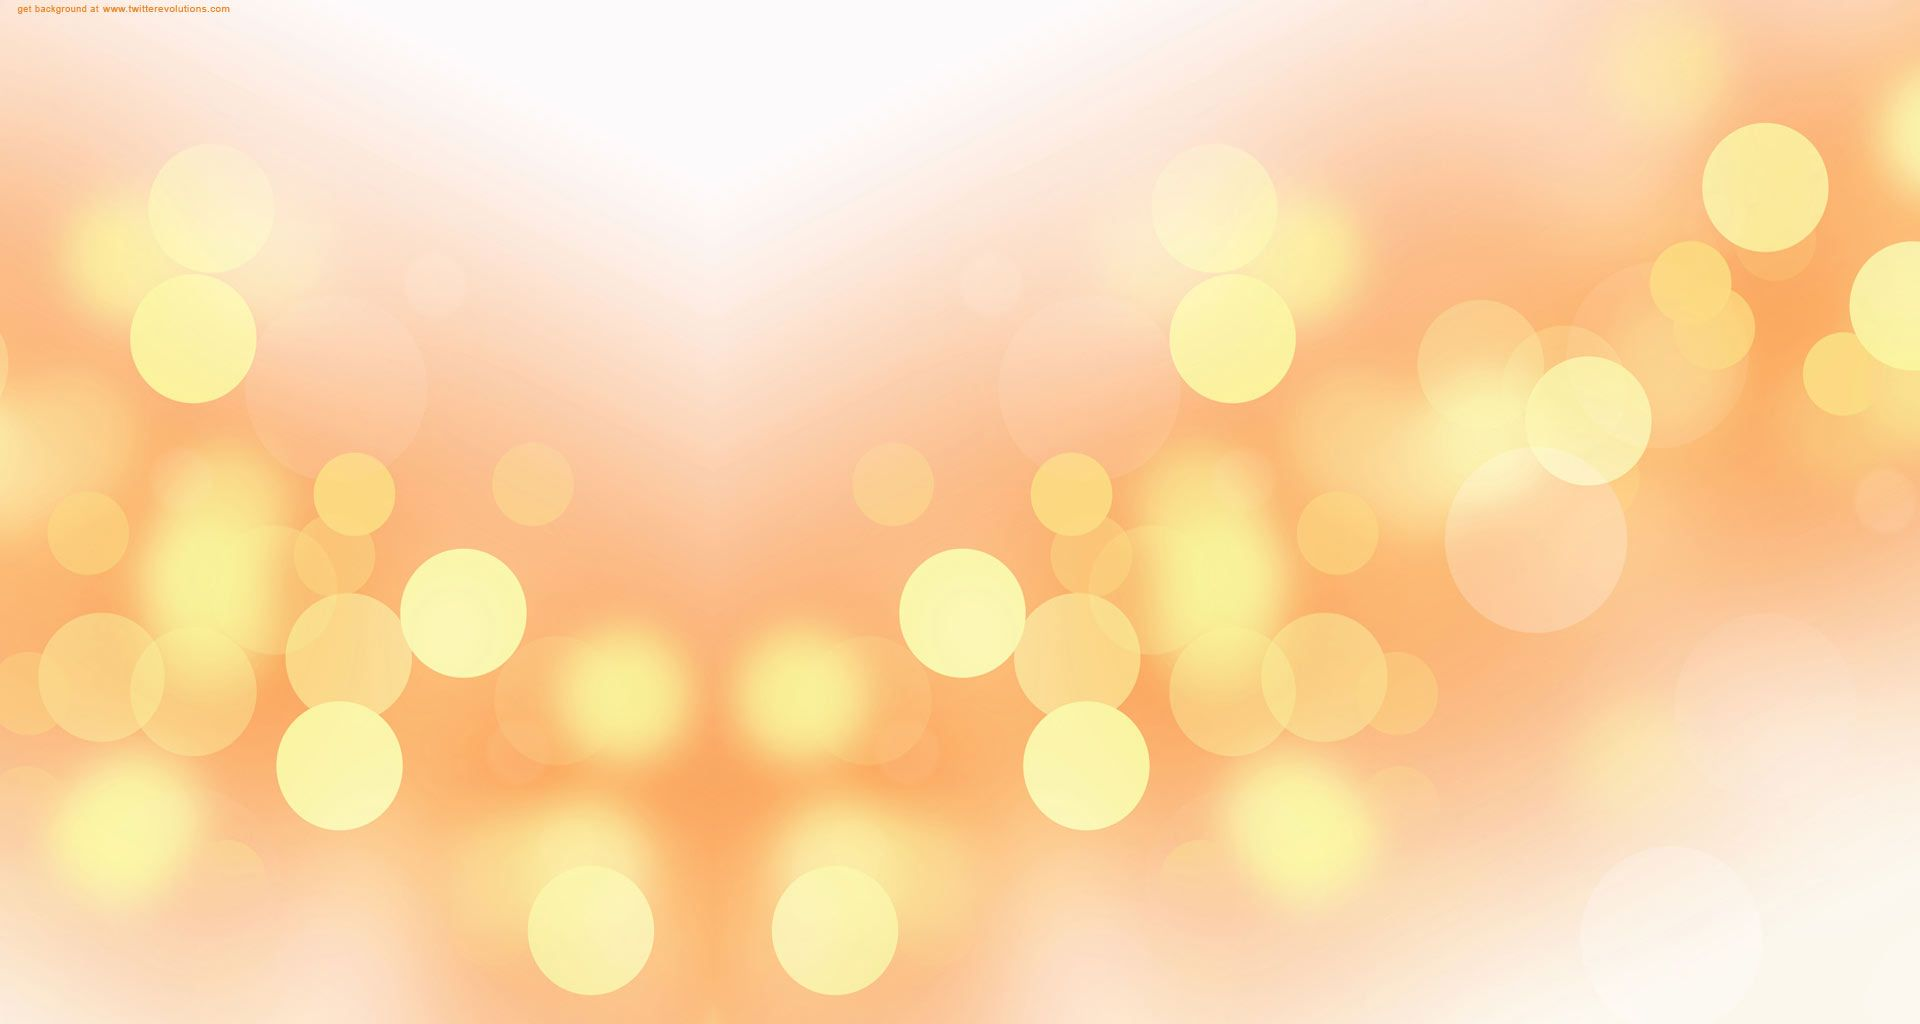 Background image light - Simple Lights Twitter Background Twitter Backgrounds Cool Stuff To Buy Pinterest Twitter Backgrounds Wallpaper And Wallpaper Backgrounds